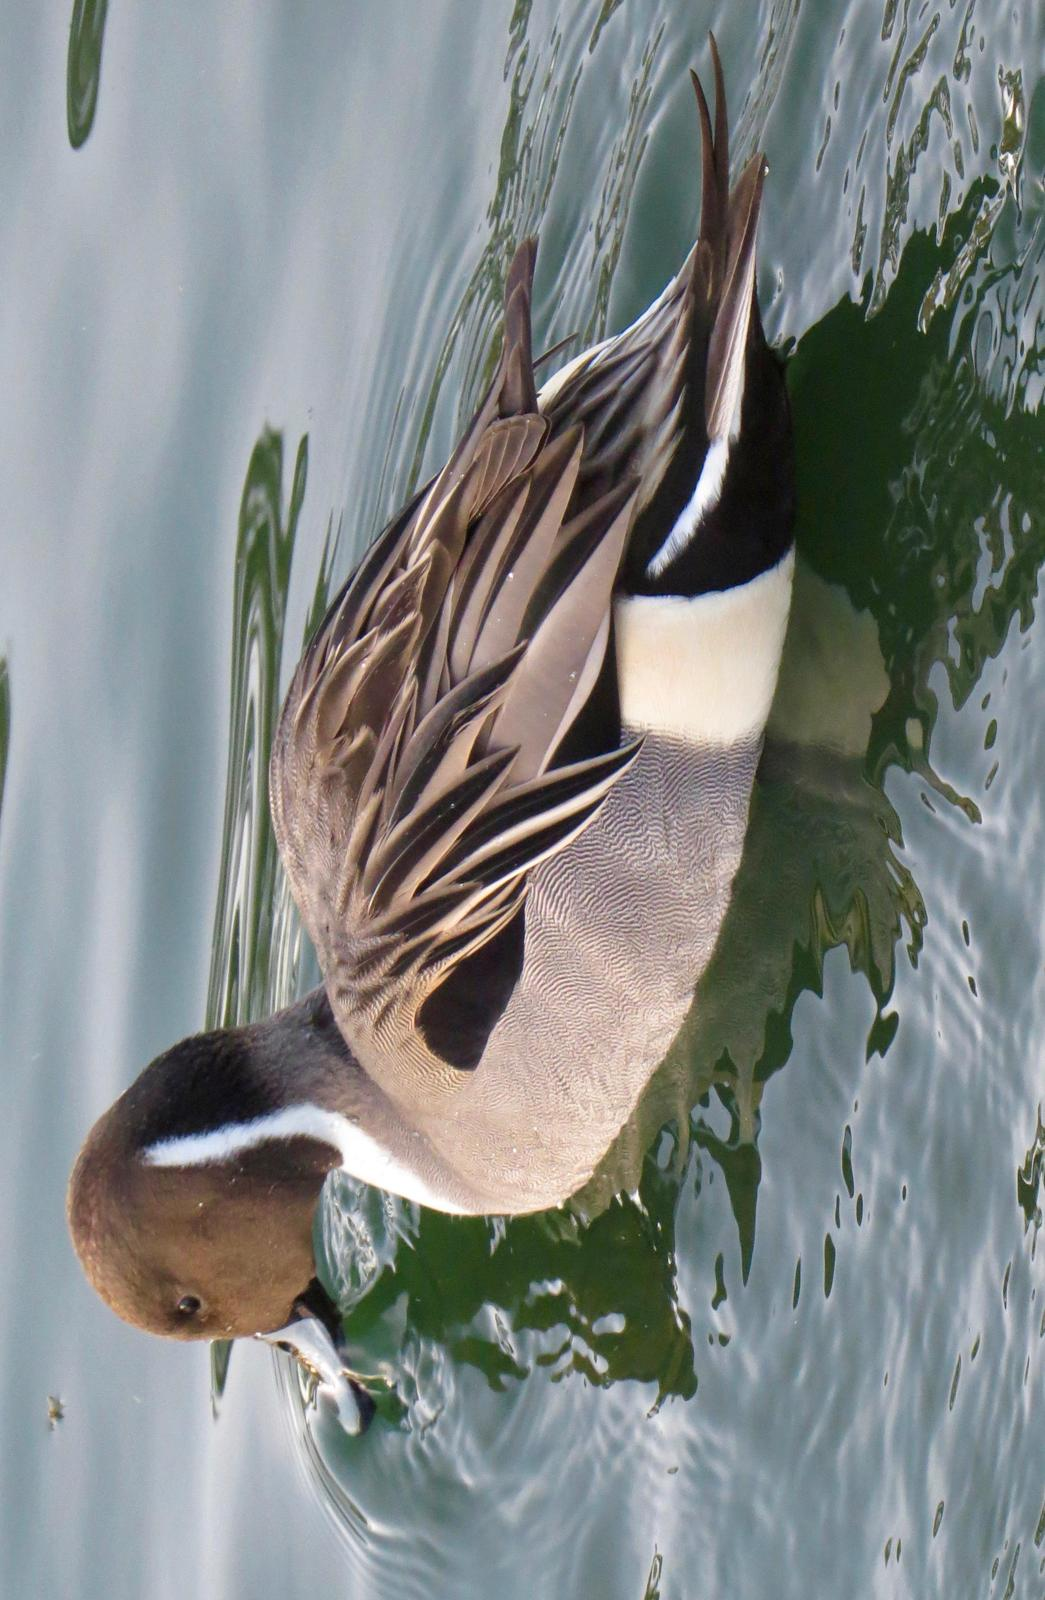 Northern Pintail Photo by Don Glasco